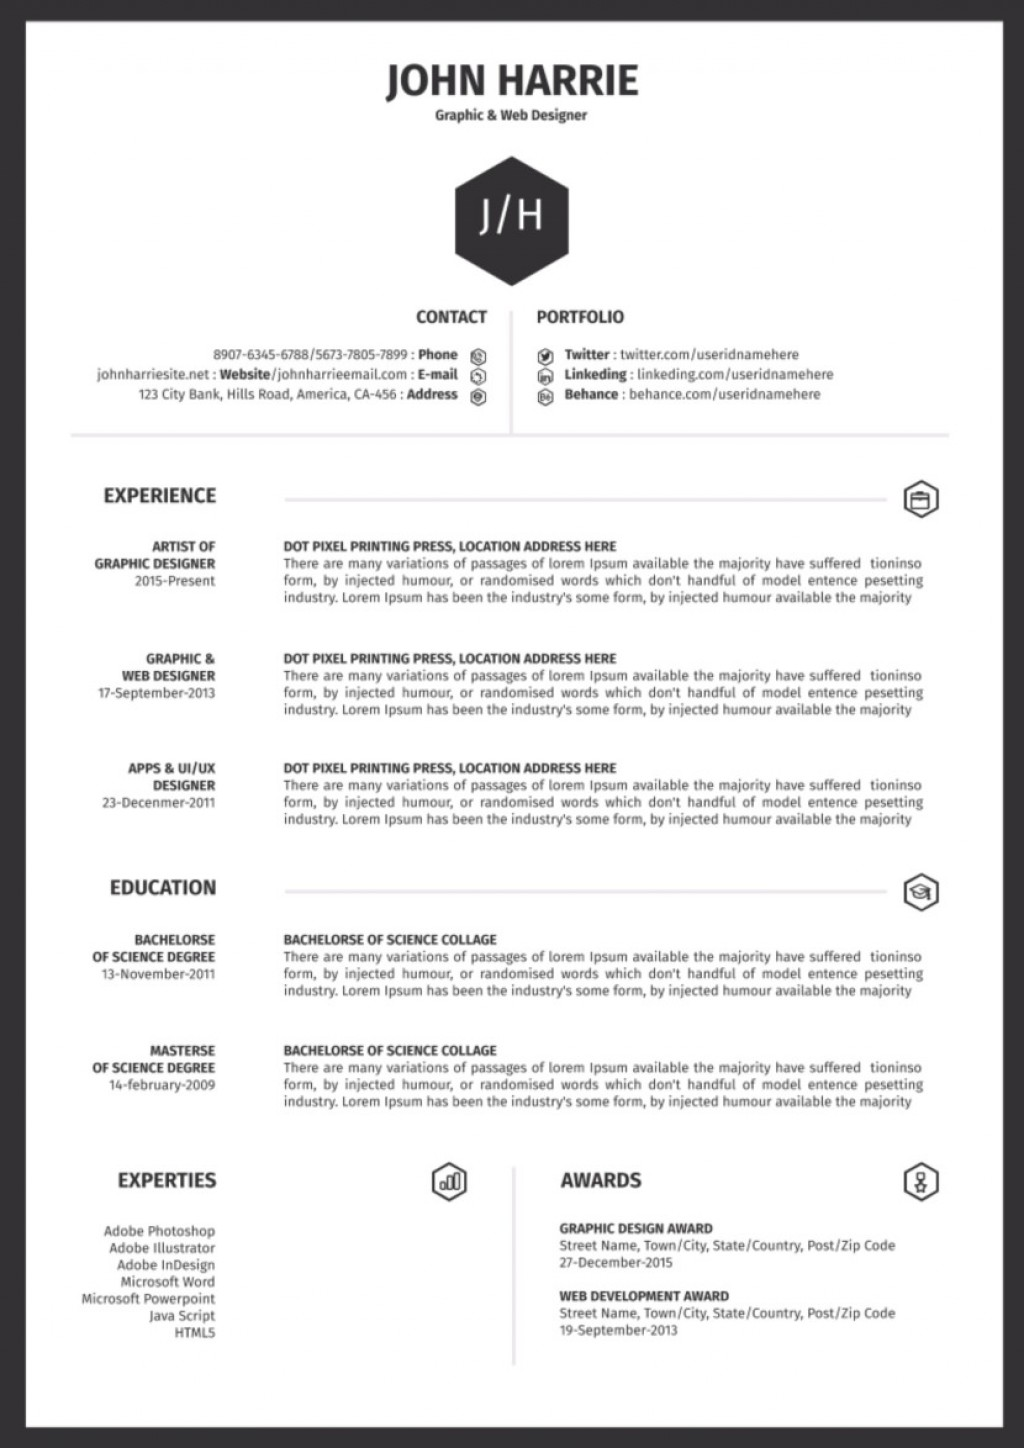 009 Frightening 1 Page Resume Template Sample  Templates One Basic Word Free Html DownloadLarge